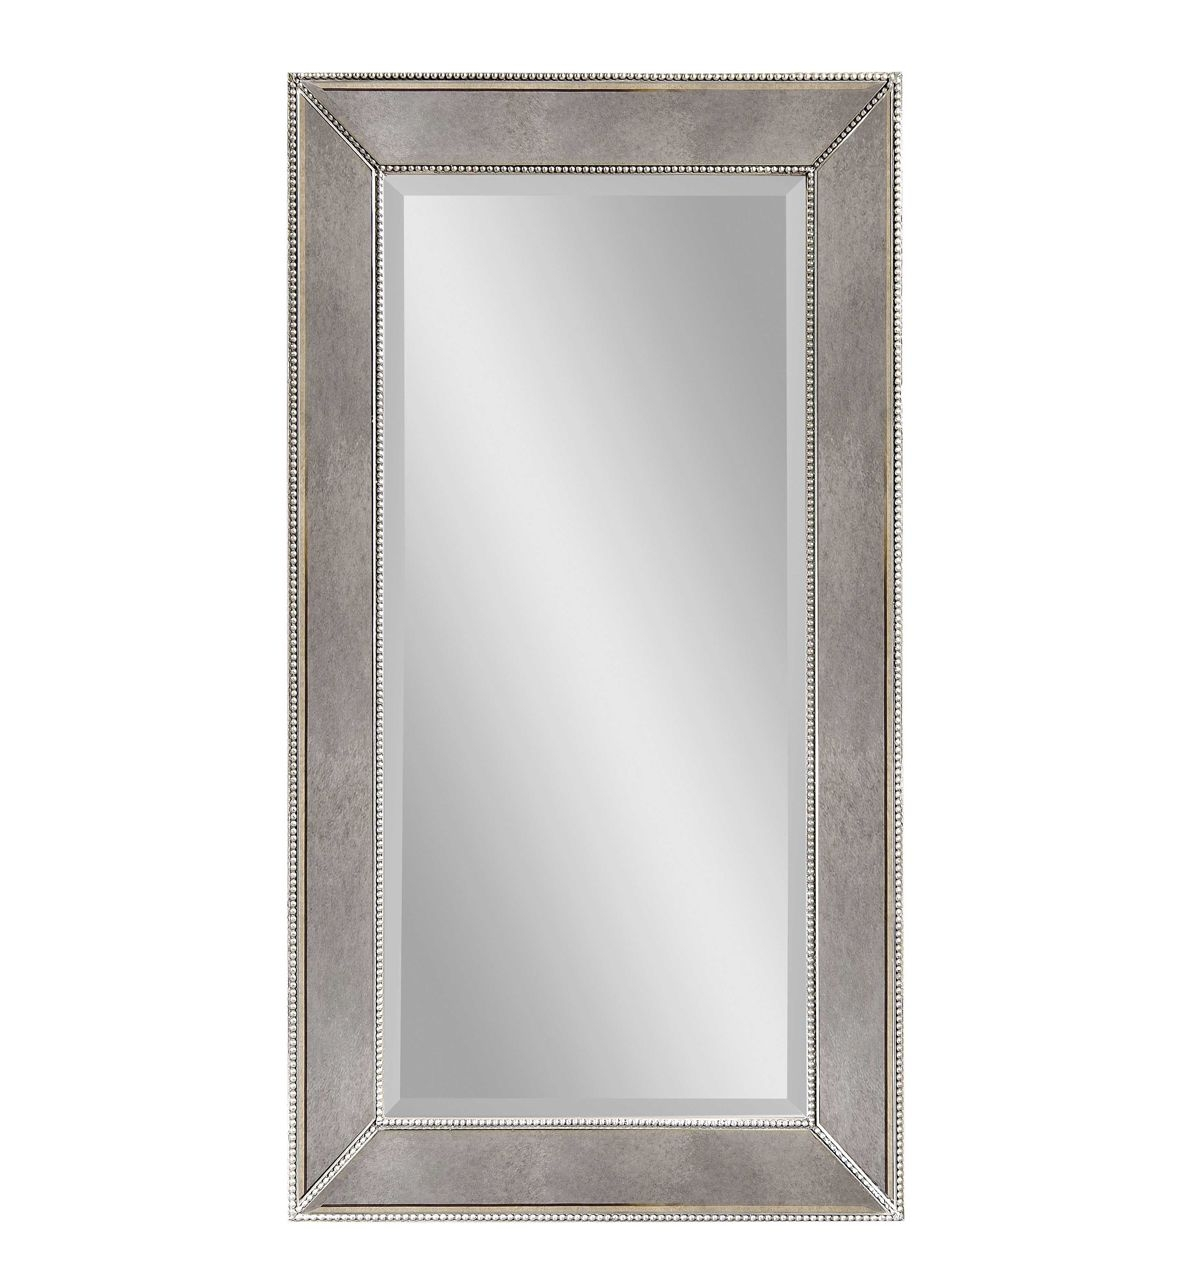 Bassett Mirror Murano Beaded Rectangular Wall Mirror In Silver With Silver Rectangular Mirror (Image 2 of 15)